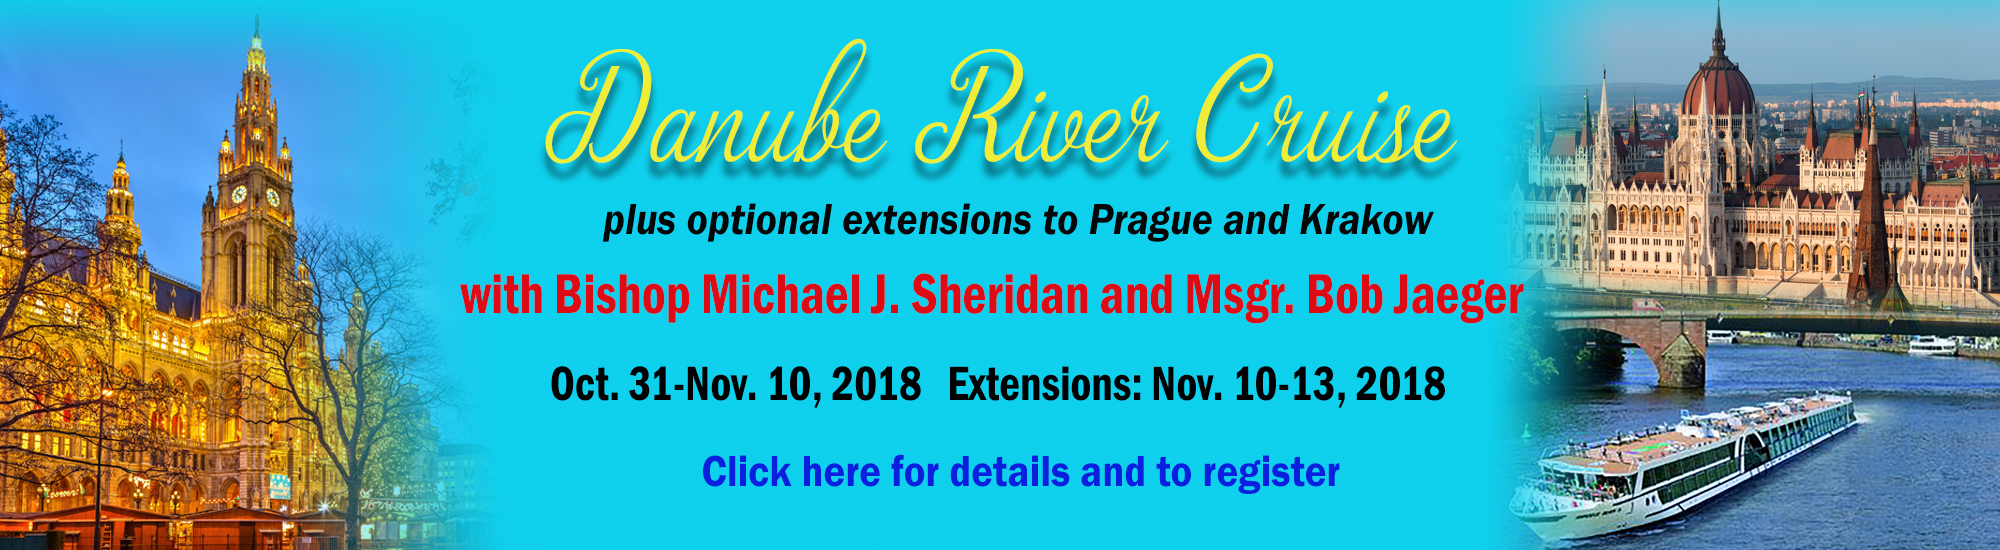 Bishop Sheridan Danube Pilgrimage Cruise